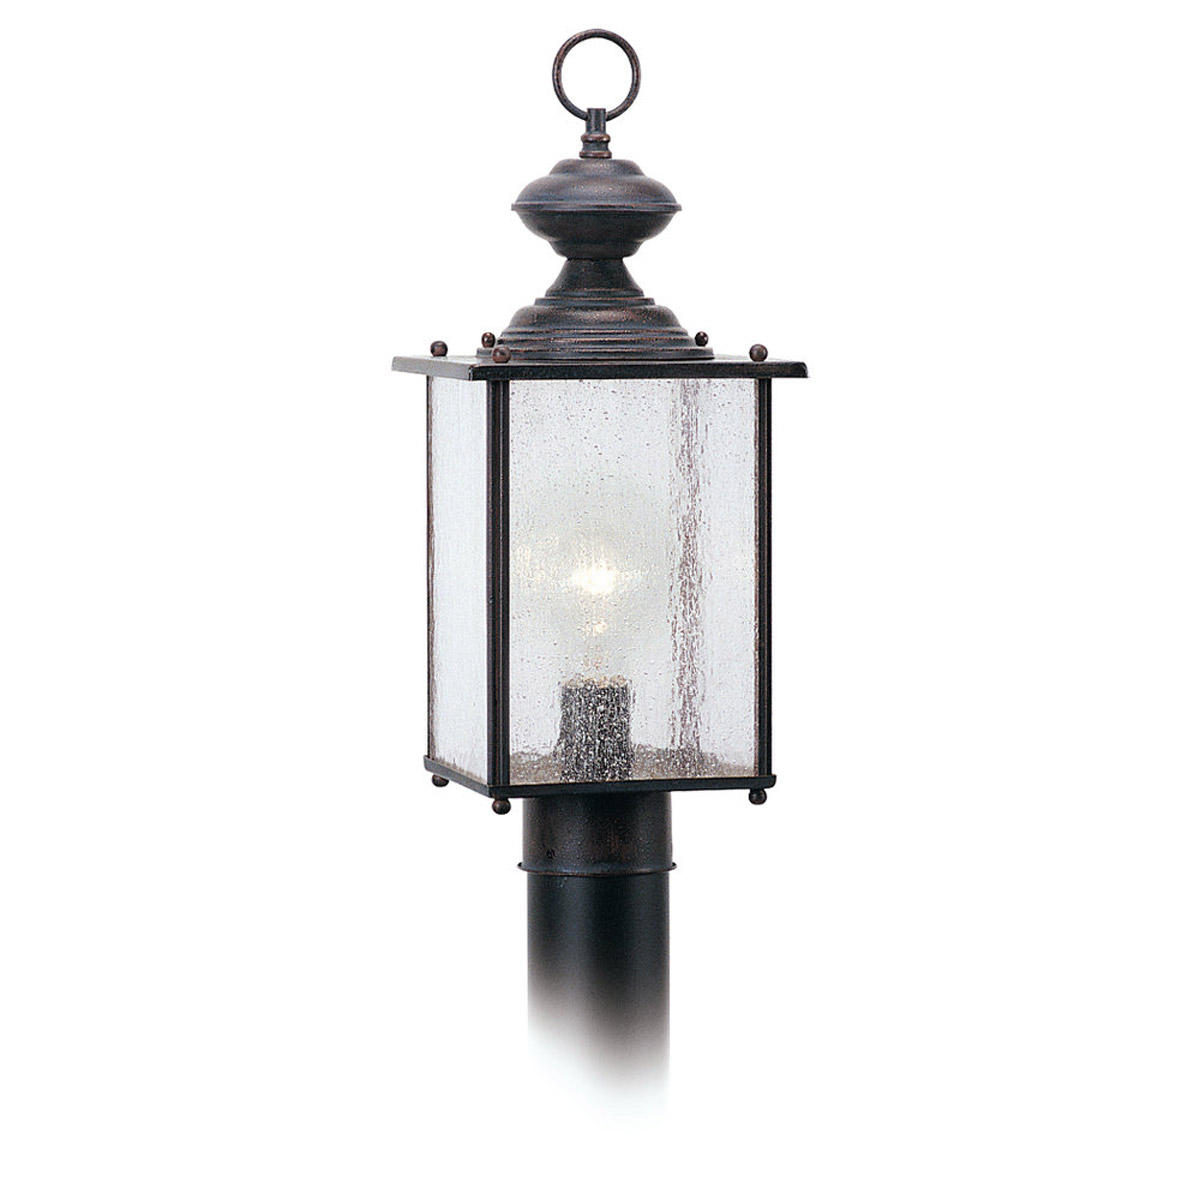 Sea Gull Lighting Jamestowne 1 Light Outdoor Post Lantern in Textured Rust Patina 8286-08 photo